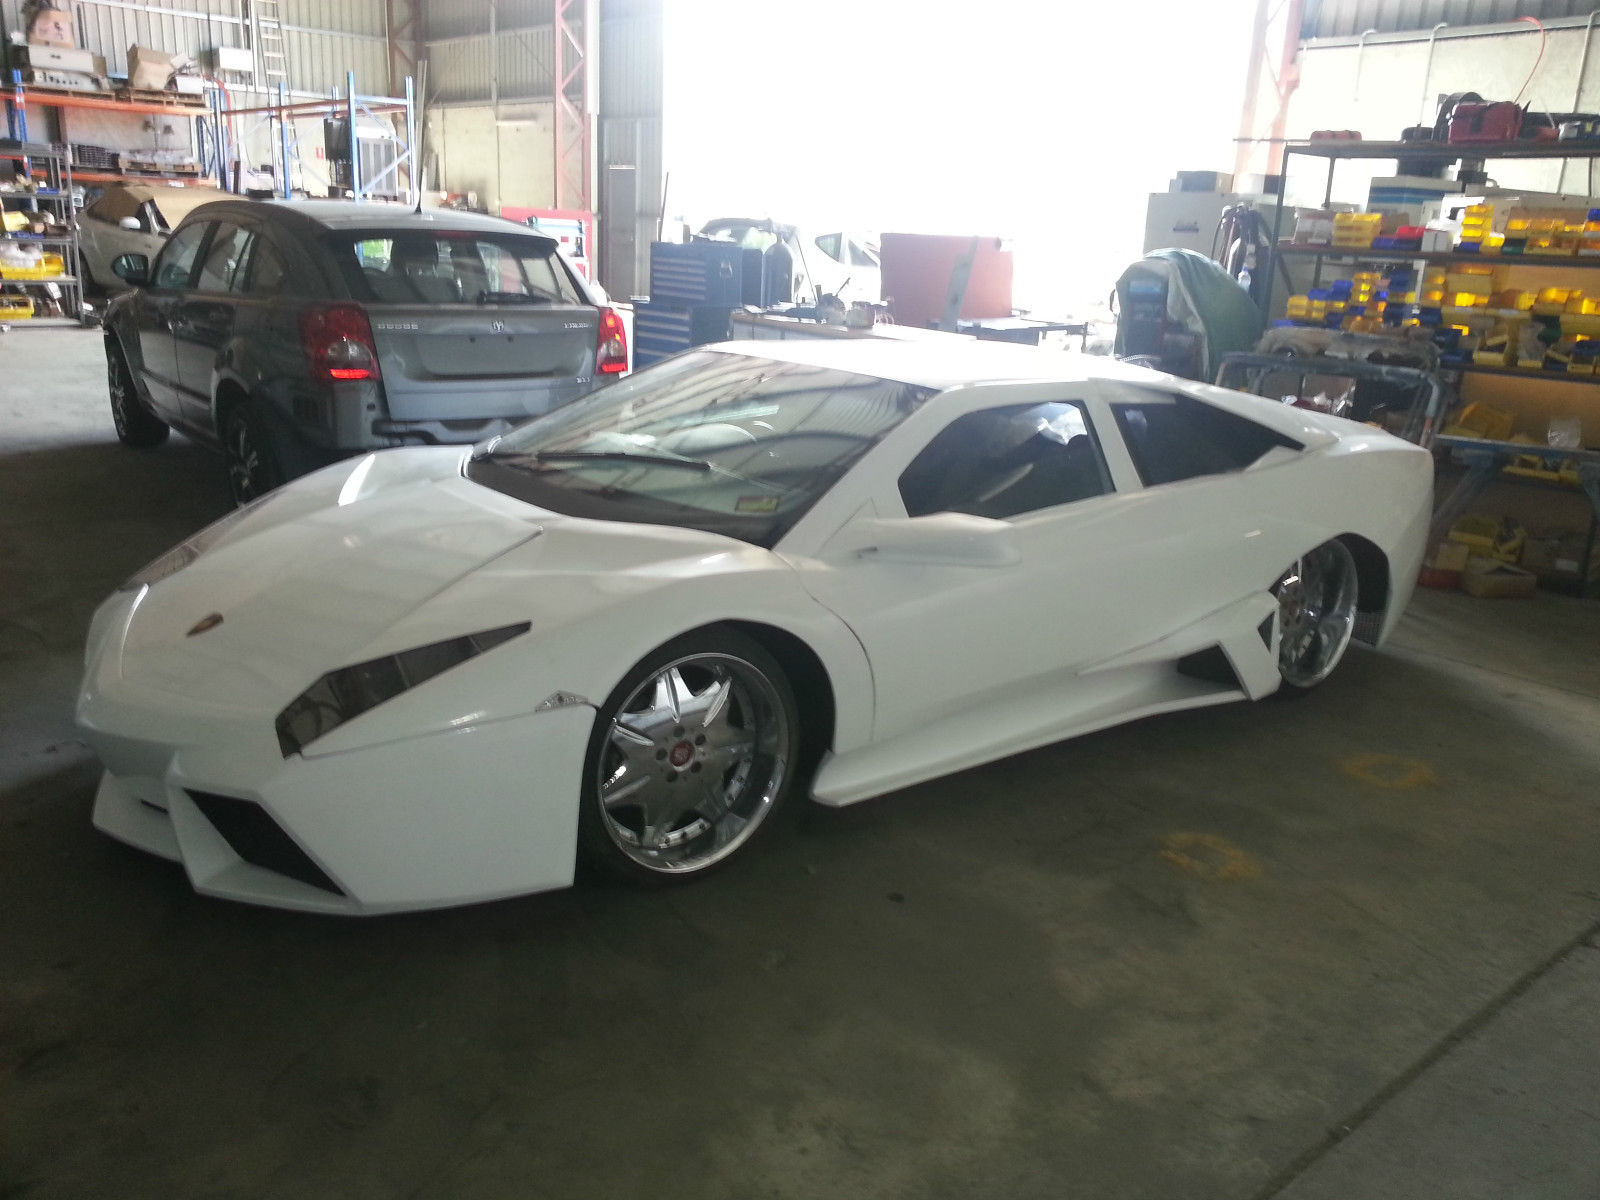 Lamborghini kit cars for sale ebay